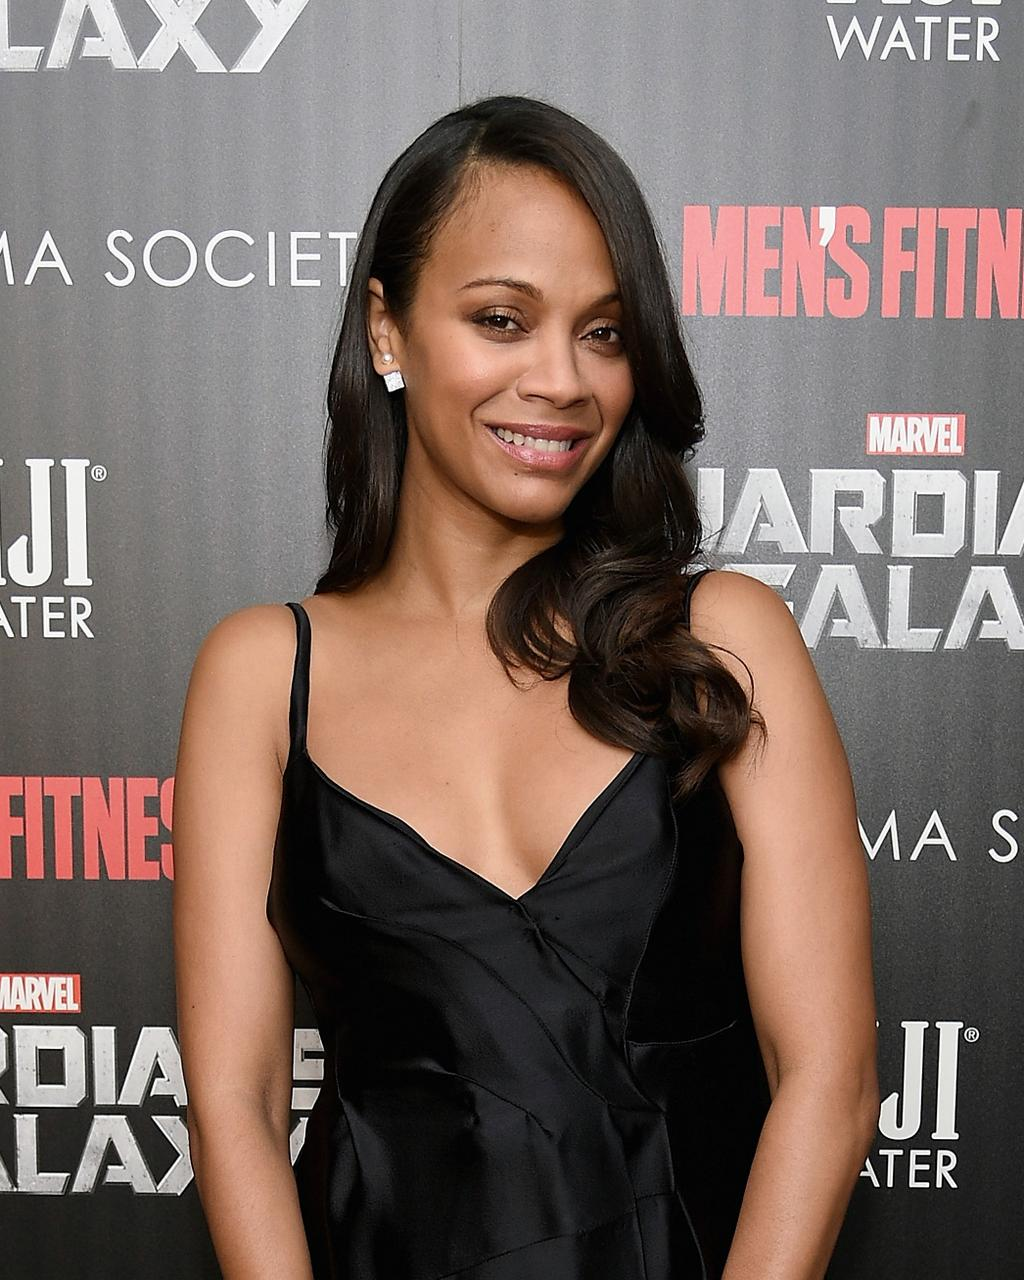 Our vote for best summer LBD goes to @zoesaldana in this @LANVINofficial number: http://t.co/eB3ky57Wp3 http://t.co/FBF0rA1YI9